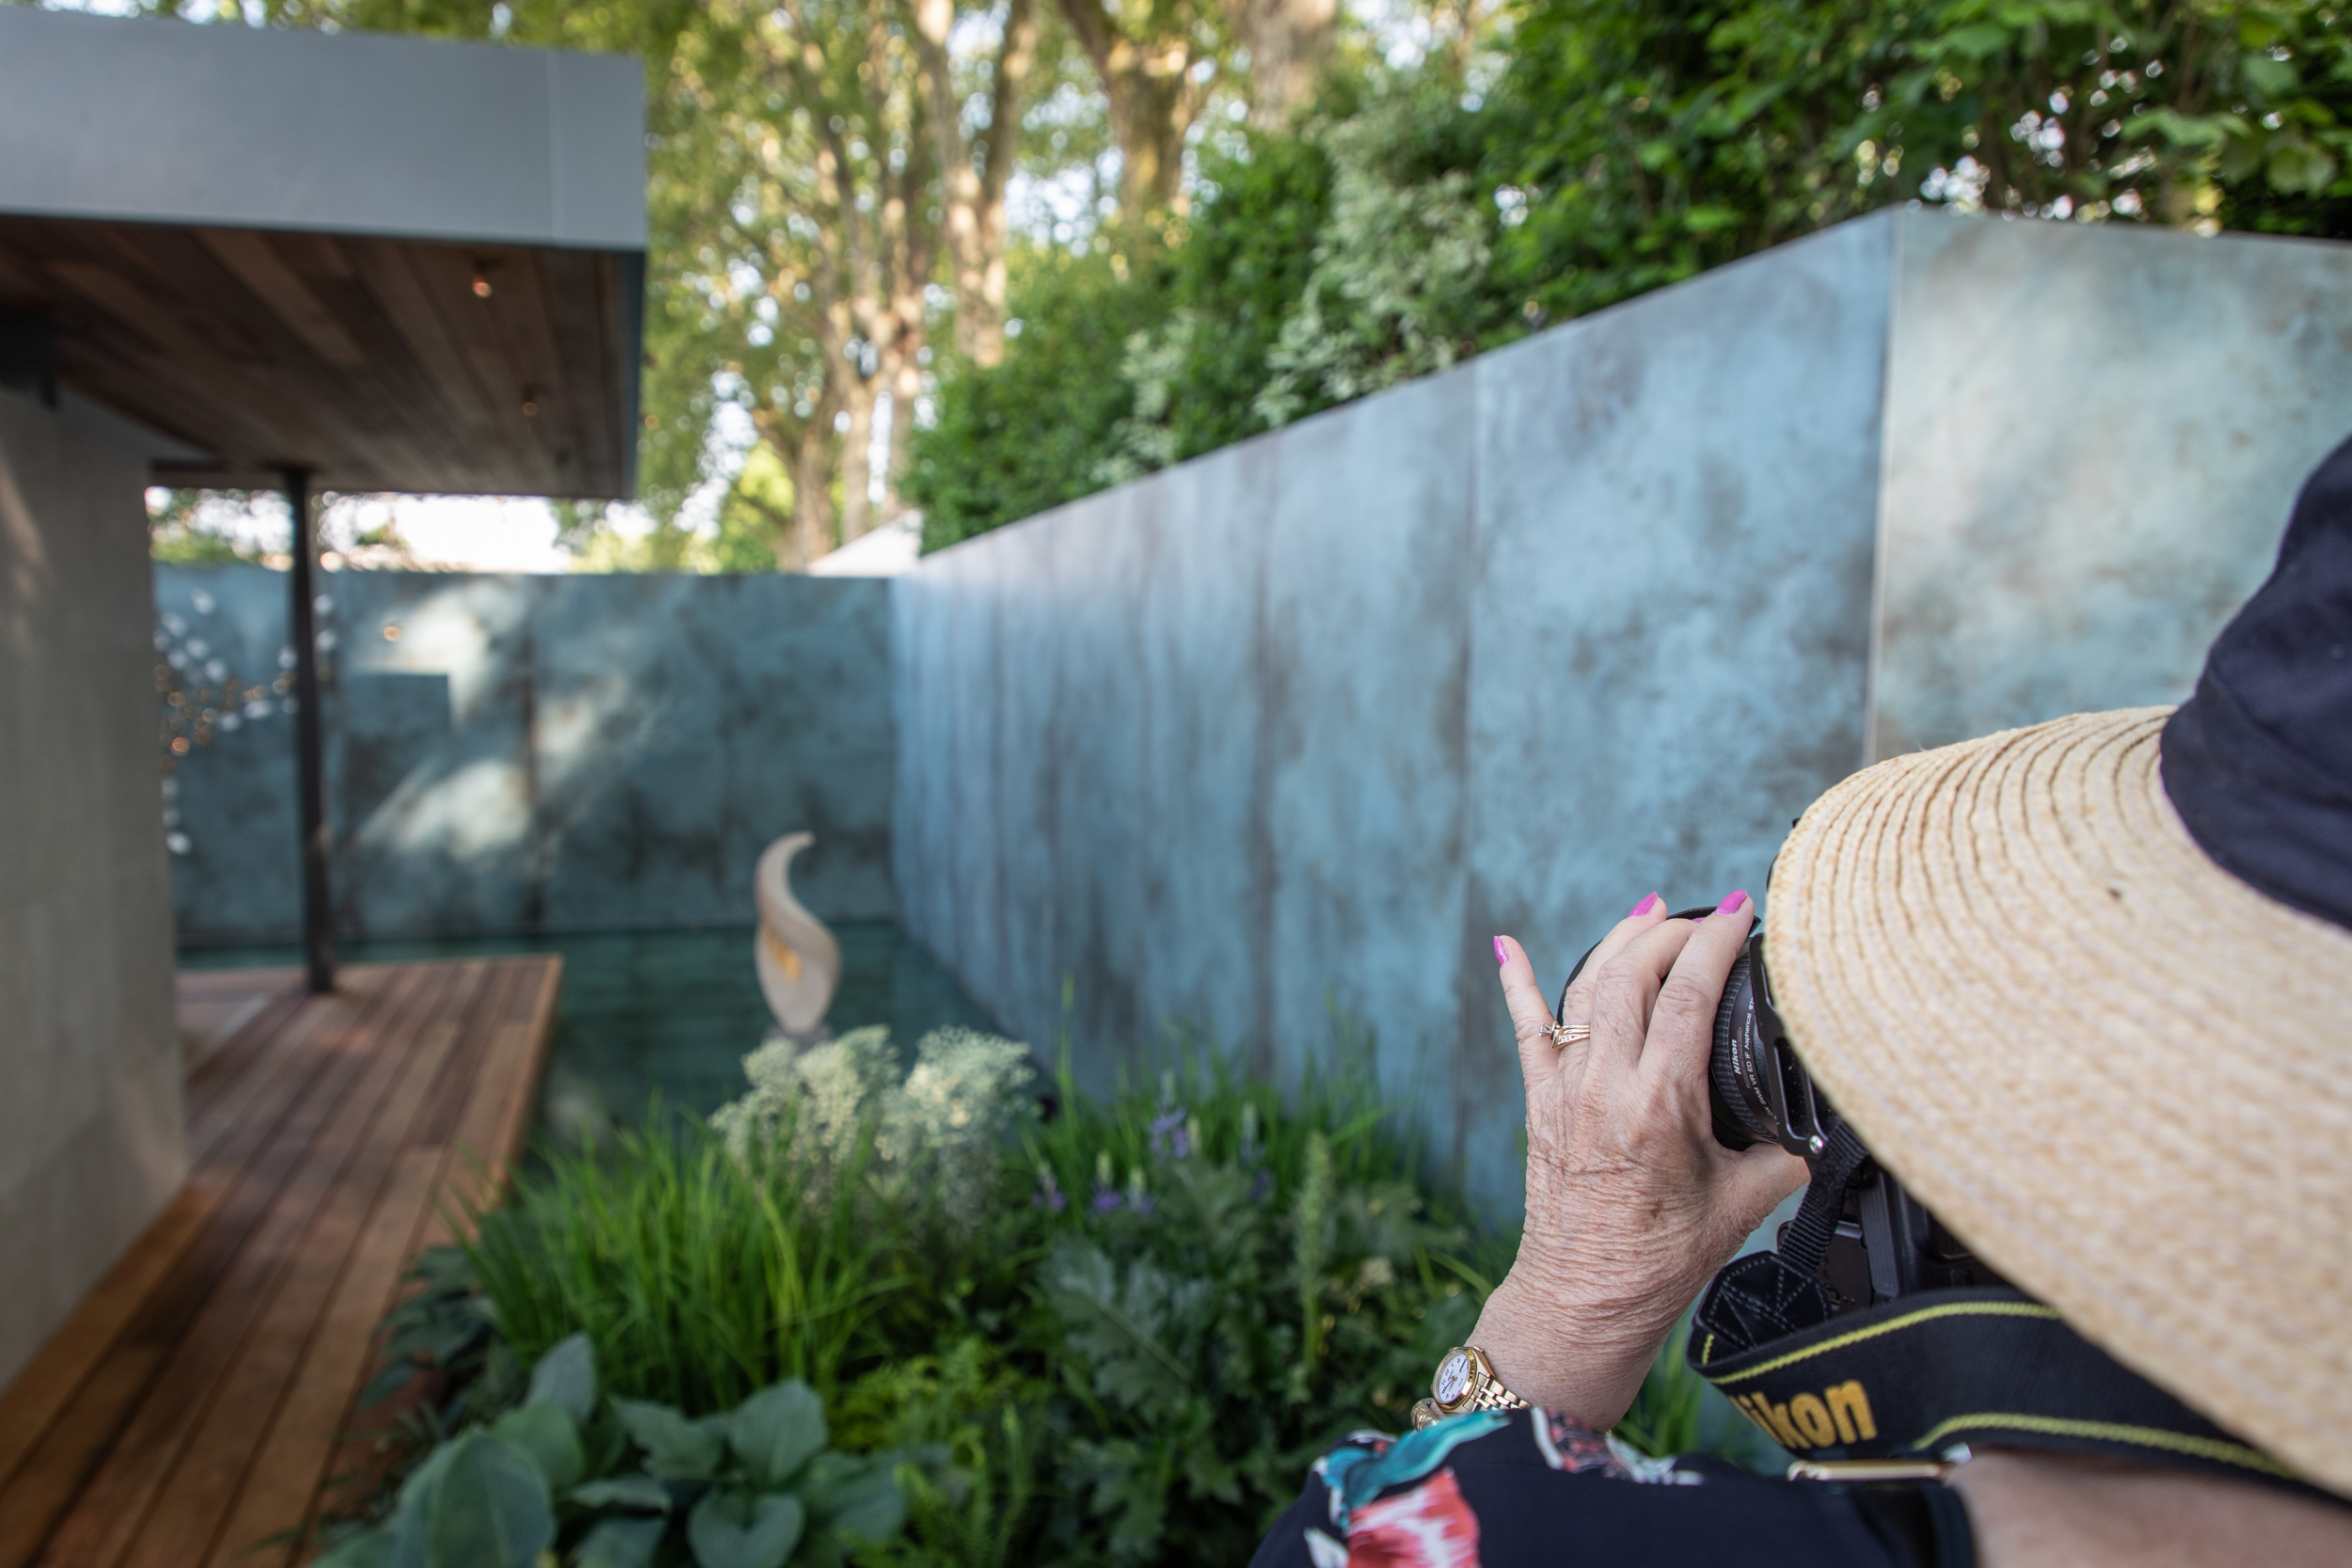 Capturing the image. Chris Beardshaw's Garden for Morgan Stanley supporting the NSPCC